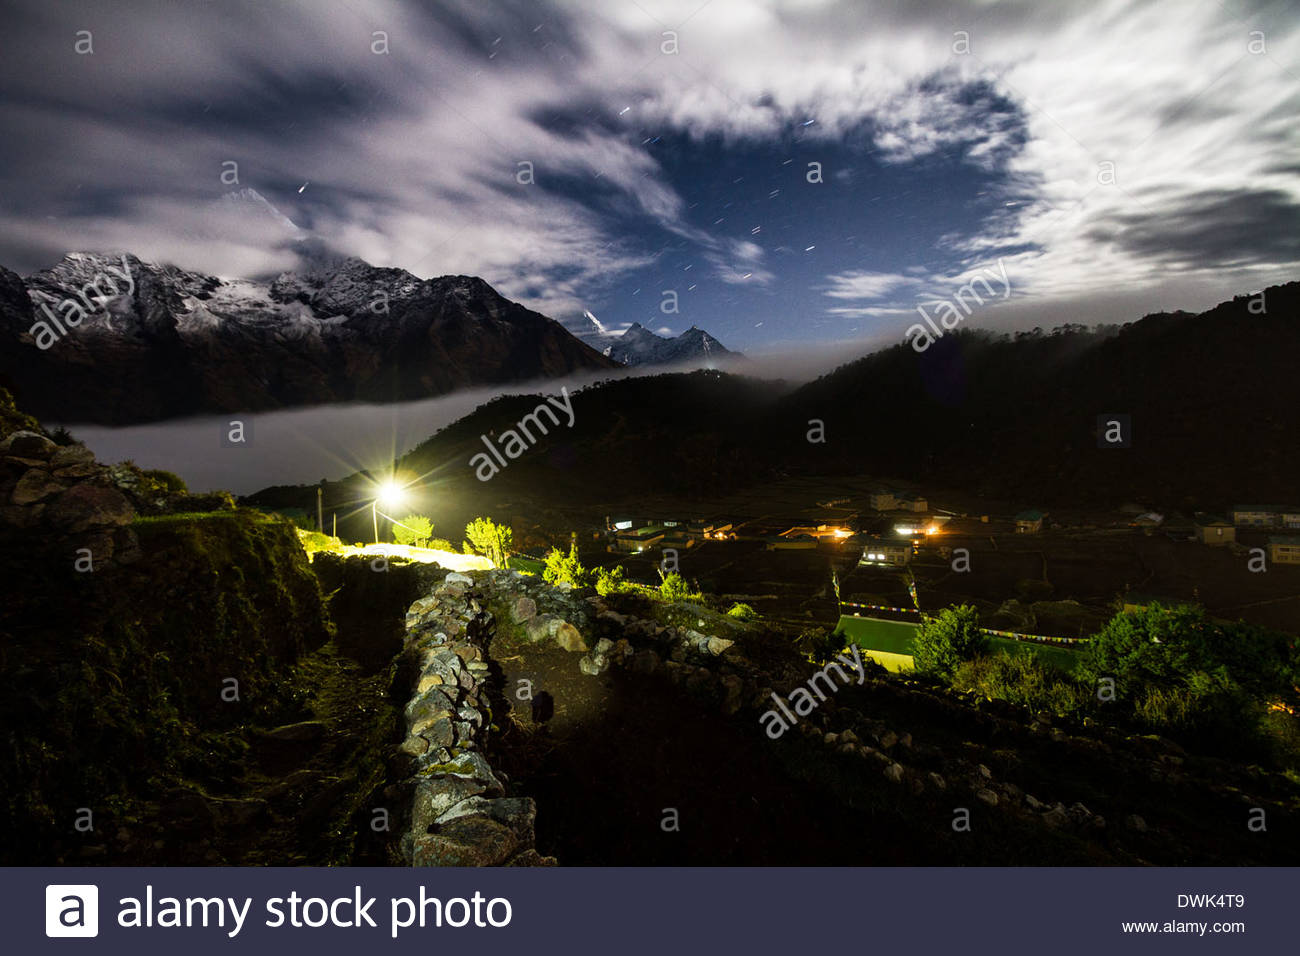 The Sherpa village of Khumjung is seen in the foreground as wind swept clouds race over the Himalayas peaks in the background. - Stock Image